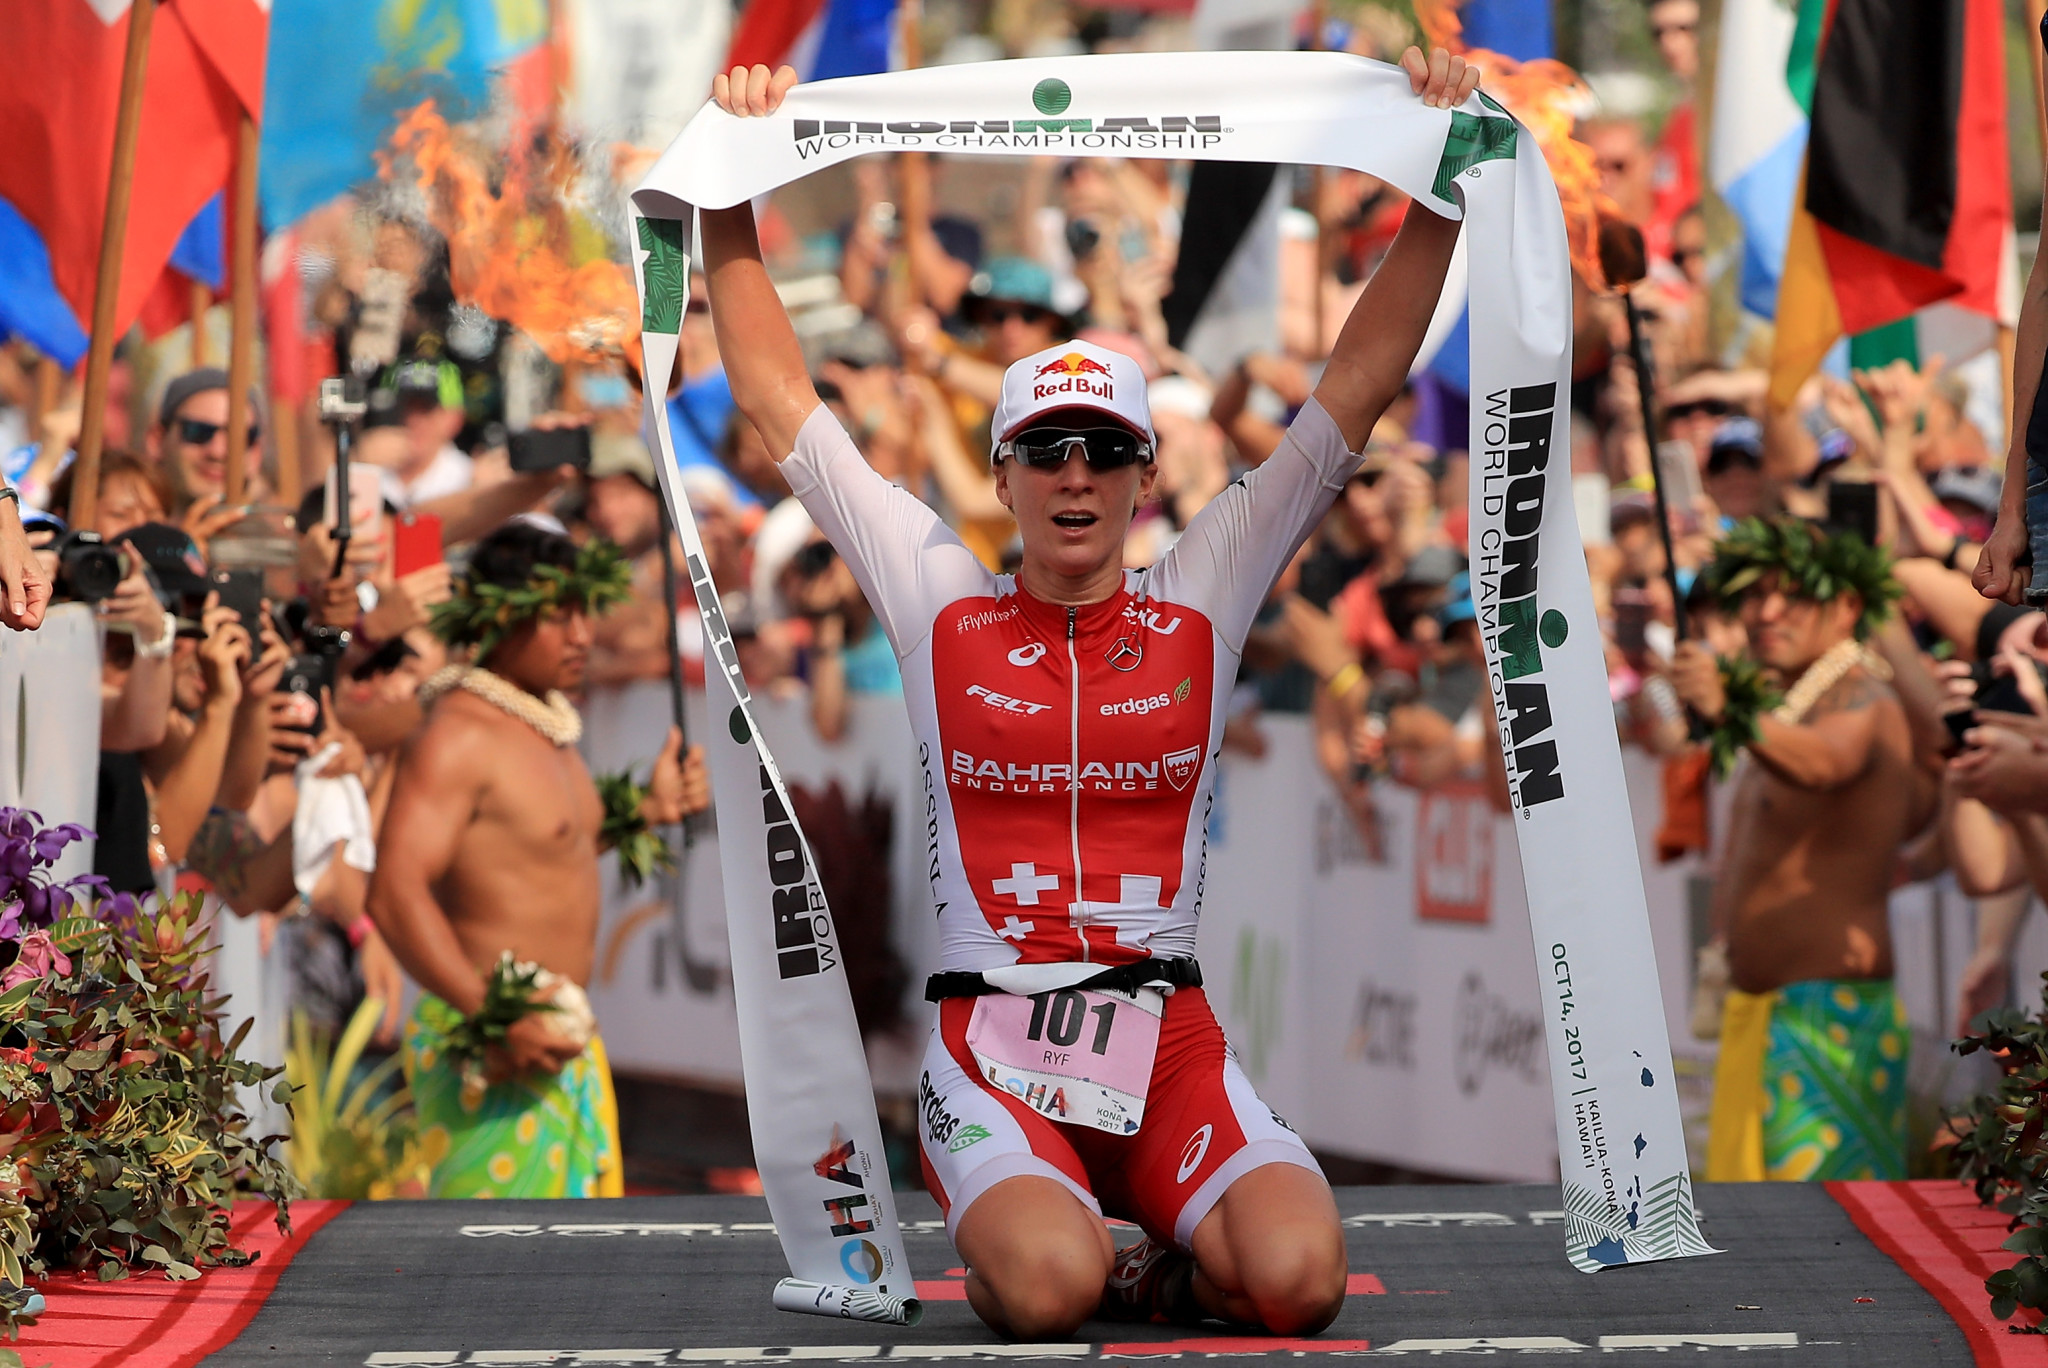 KAILUA KONA, HI - OCTOBER 14:  Daniela Ryf of Switzerland celebrates after winning the IRONMAN World Championship on October 14, 2017 in Kailua Kona, Hawaii.  (Photo by Sean M. Haffey/Getty Images for IRONMAN)